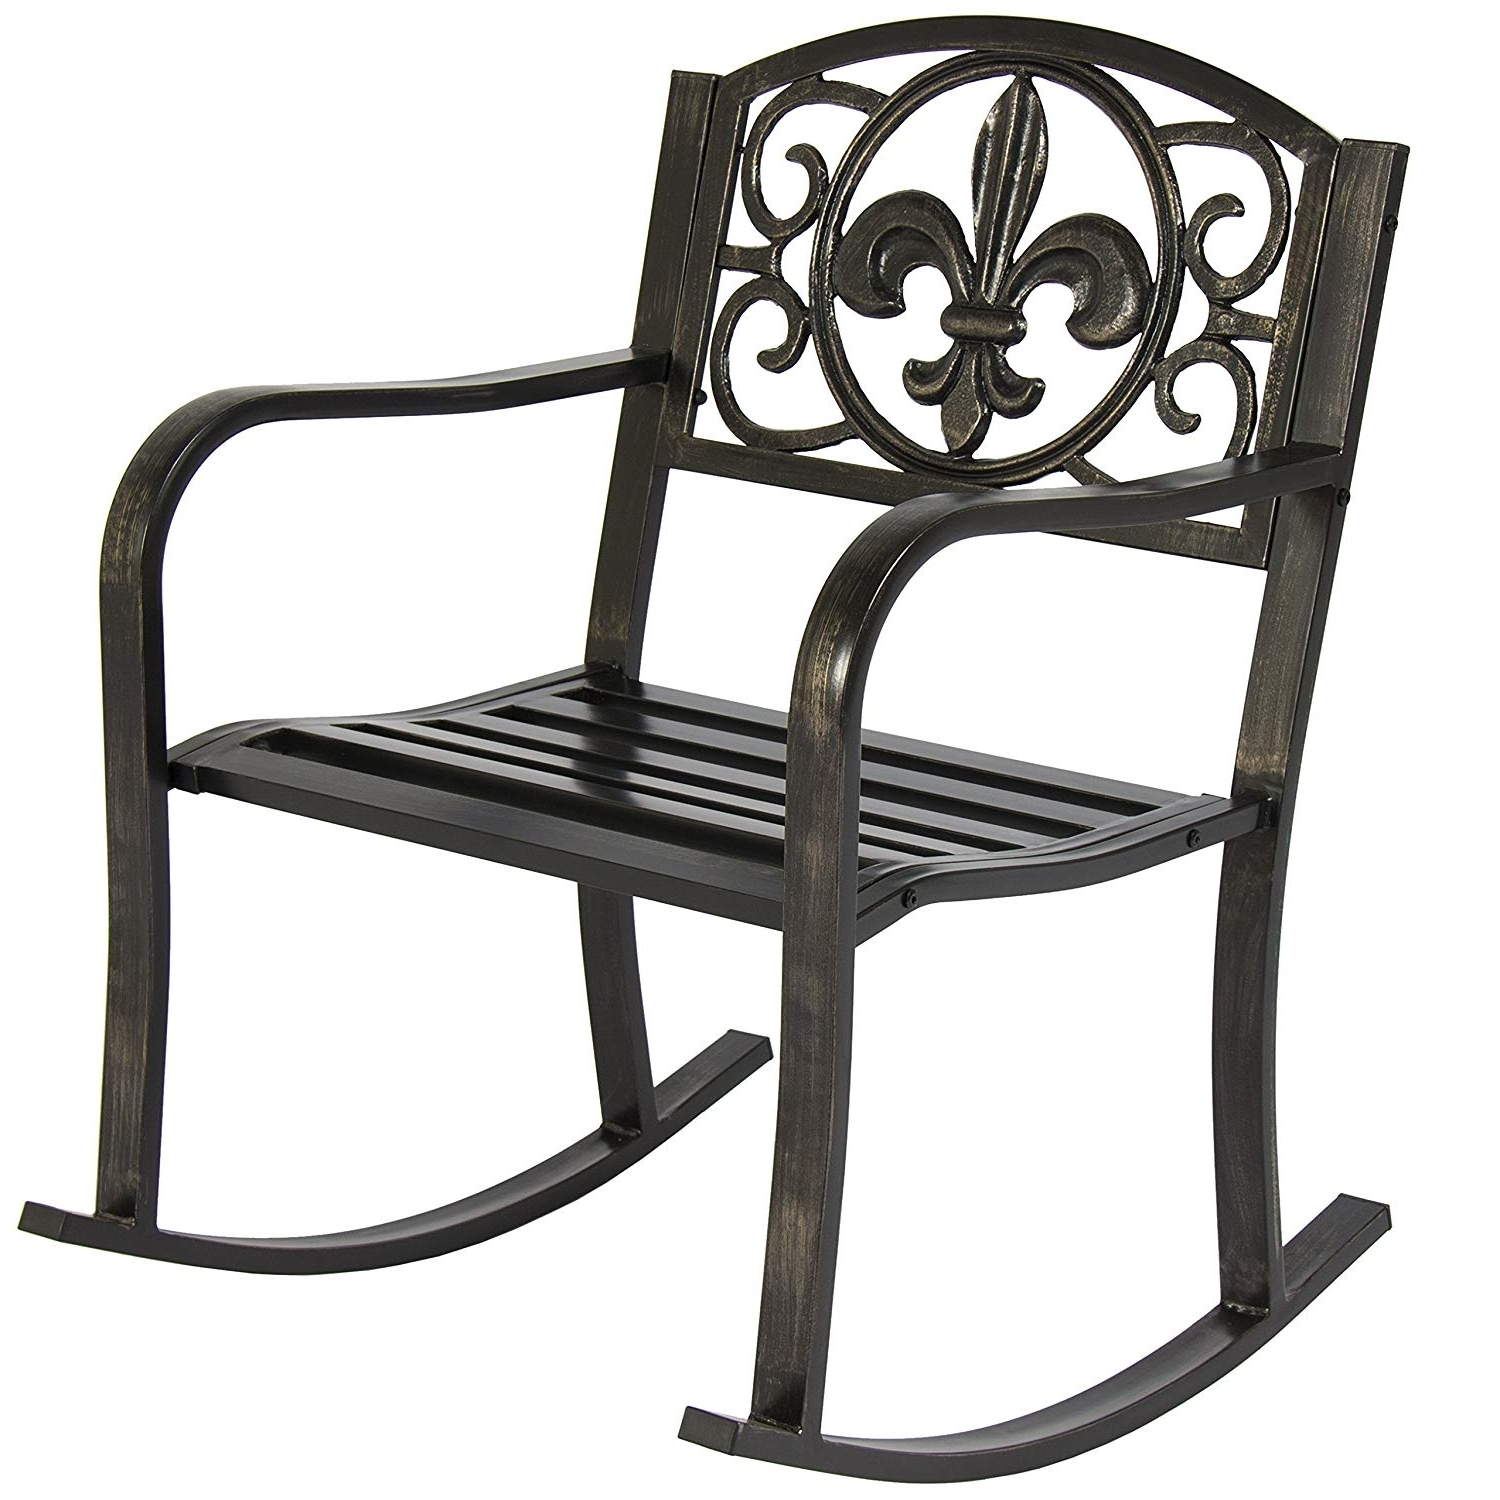 Best And Newest Iron Rocking Patio Chairs With Regard To Amazon : Best Choice Products Metal Rocking Chair Seat For Patio (View 2 of 15)